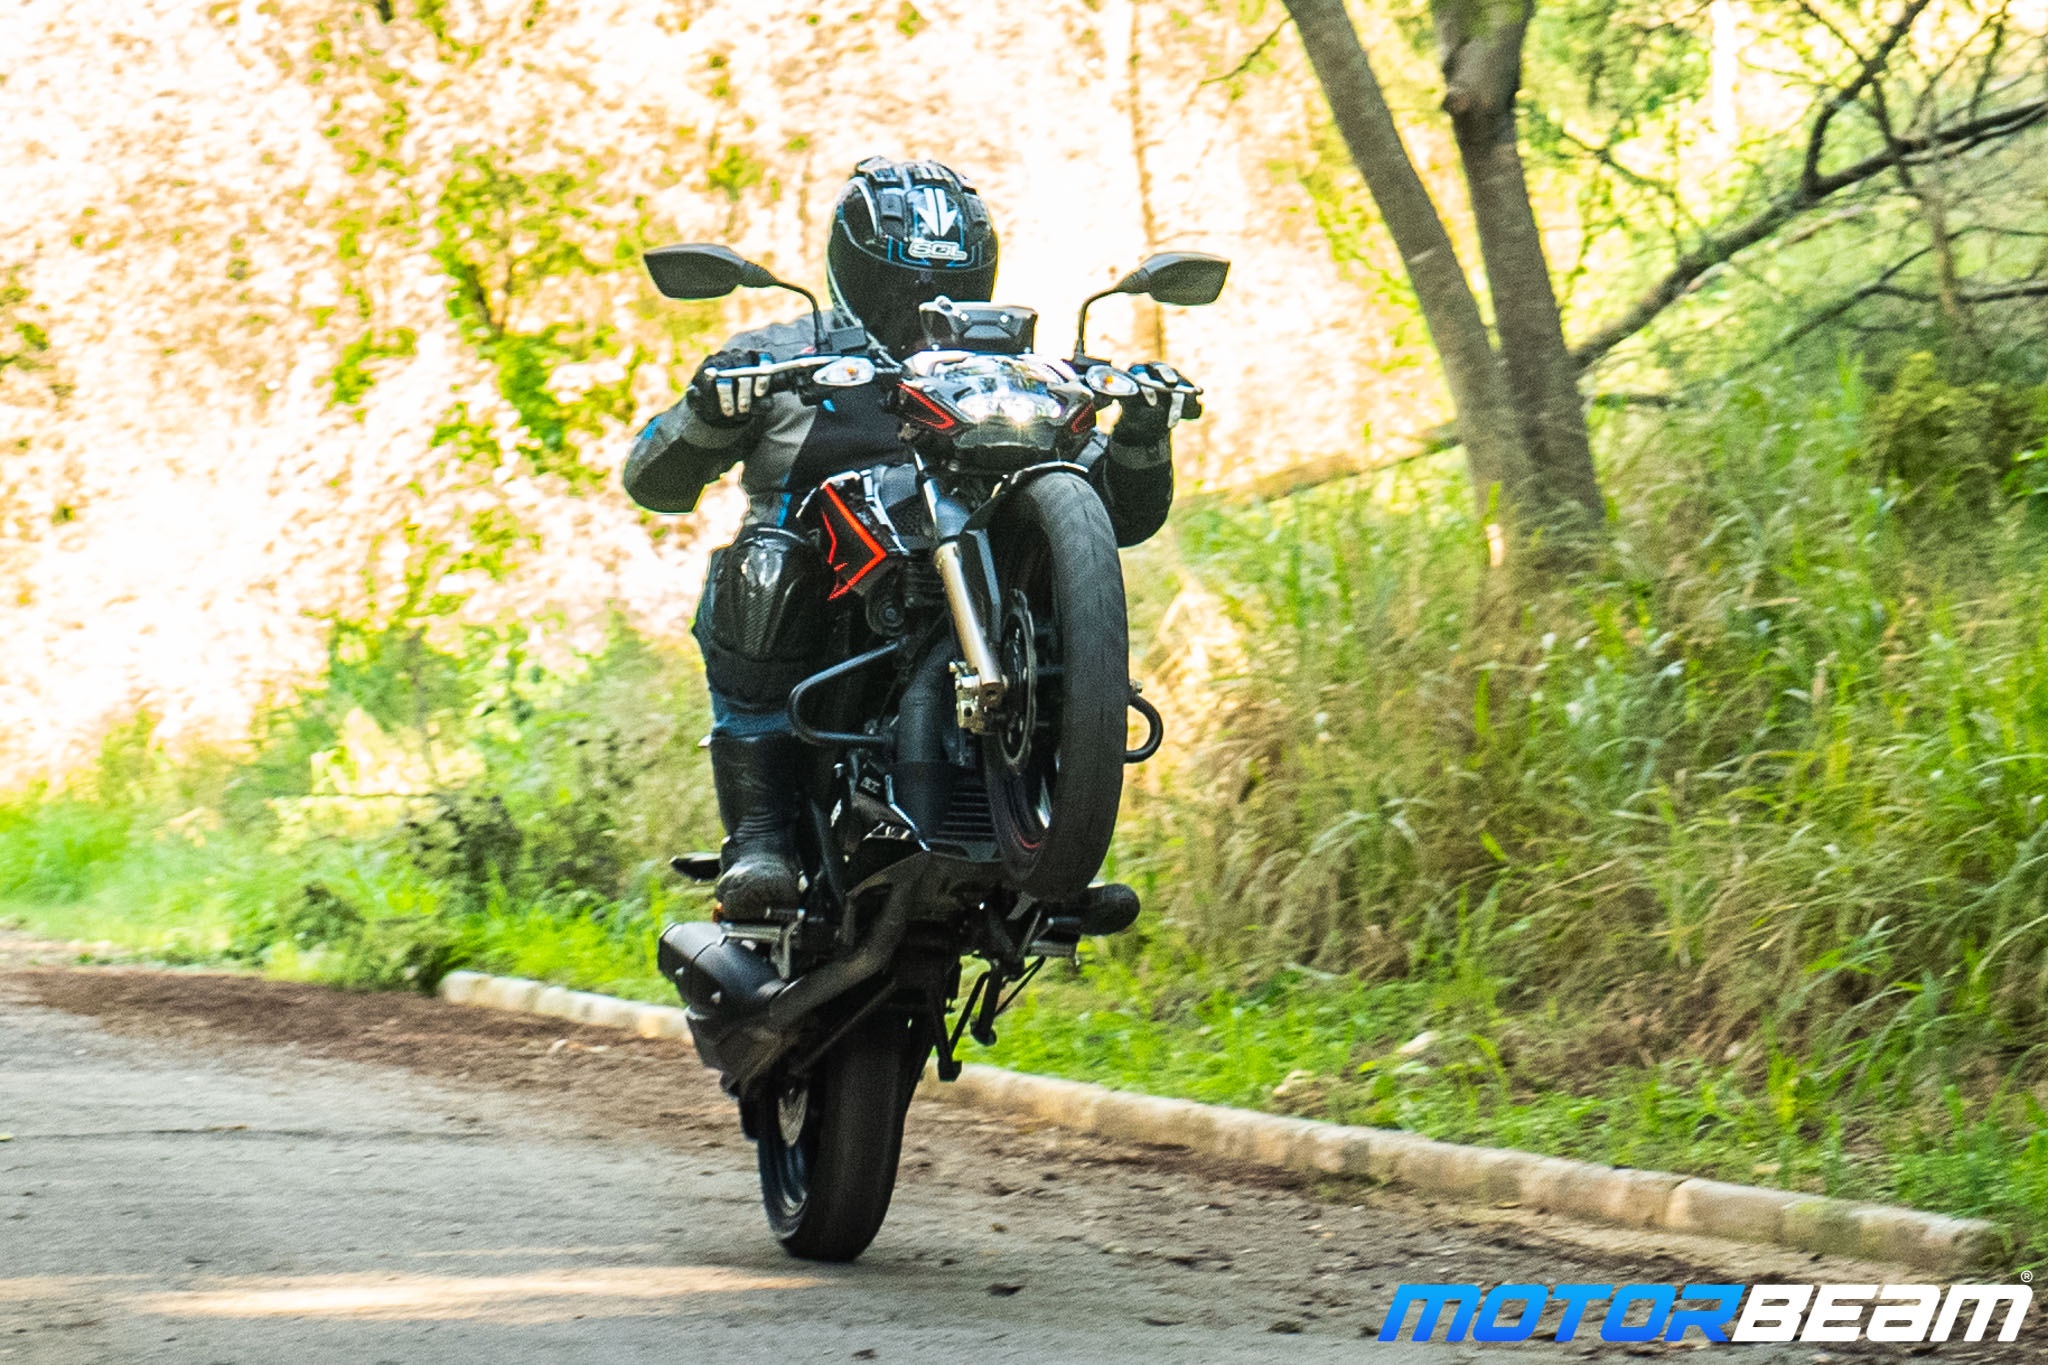 2020 TVS Apache 200 Test Ride Review